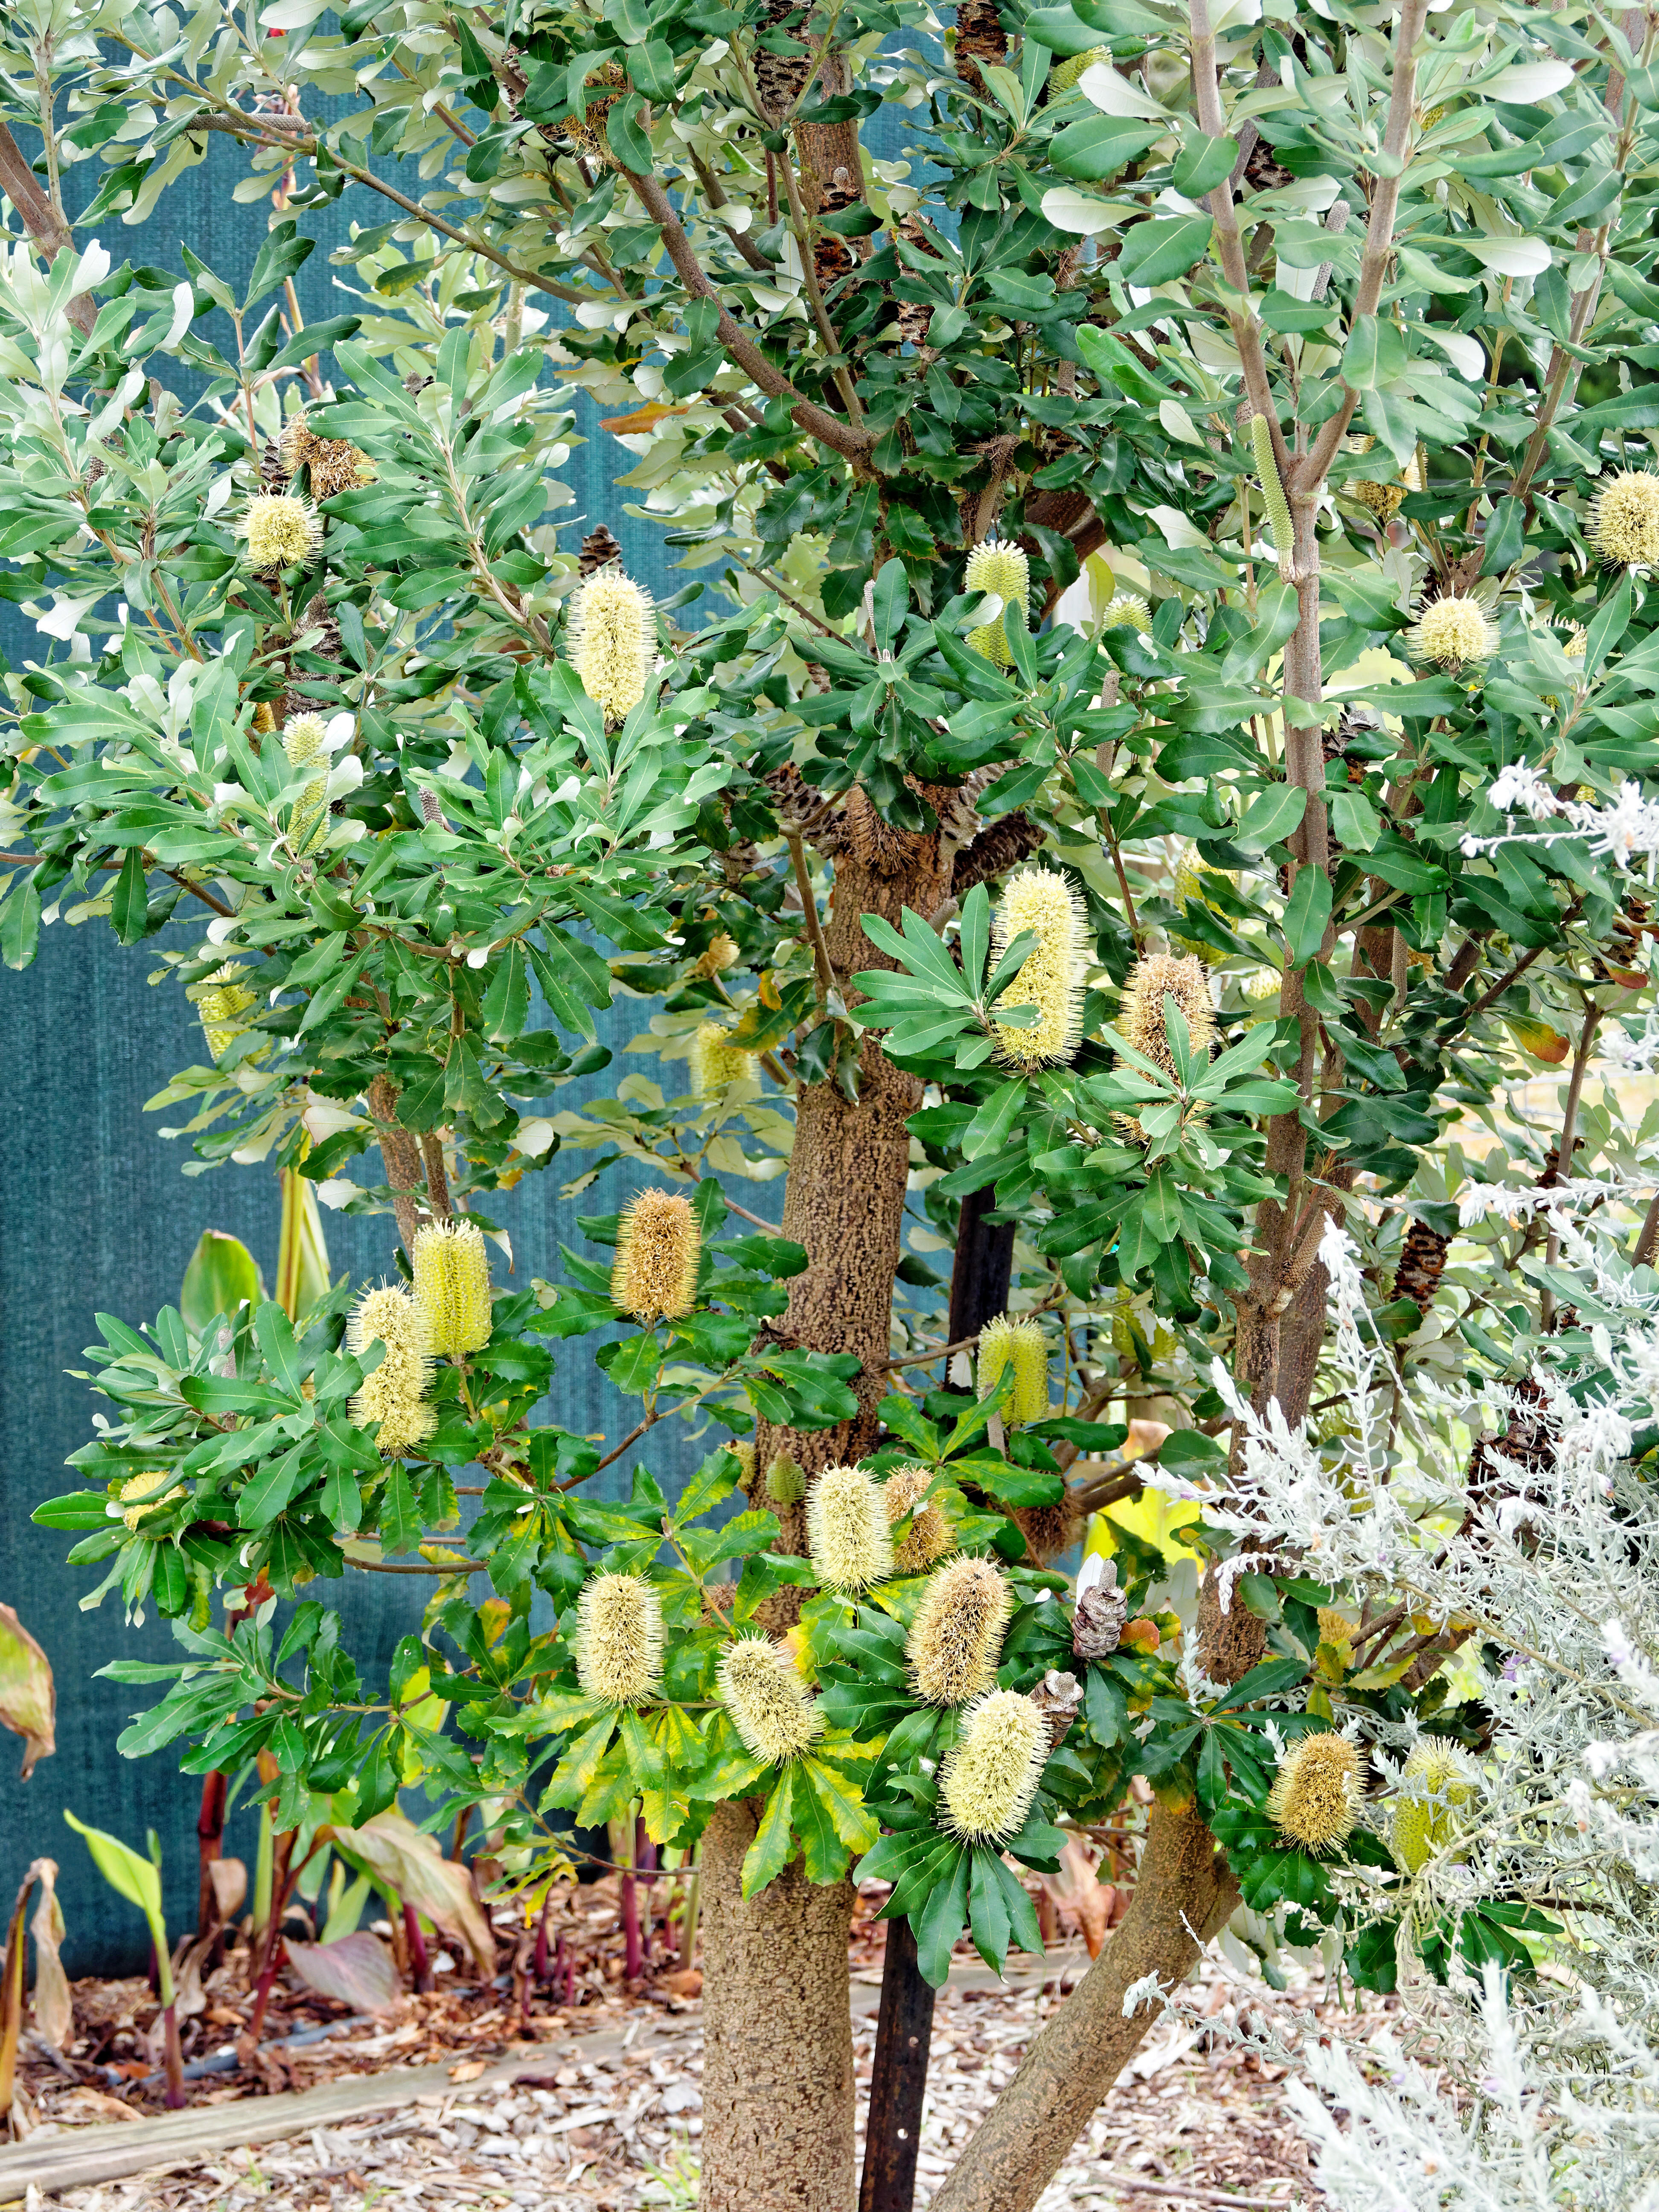 This should be Banksia-1.jpeg.  Is it missing?